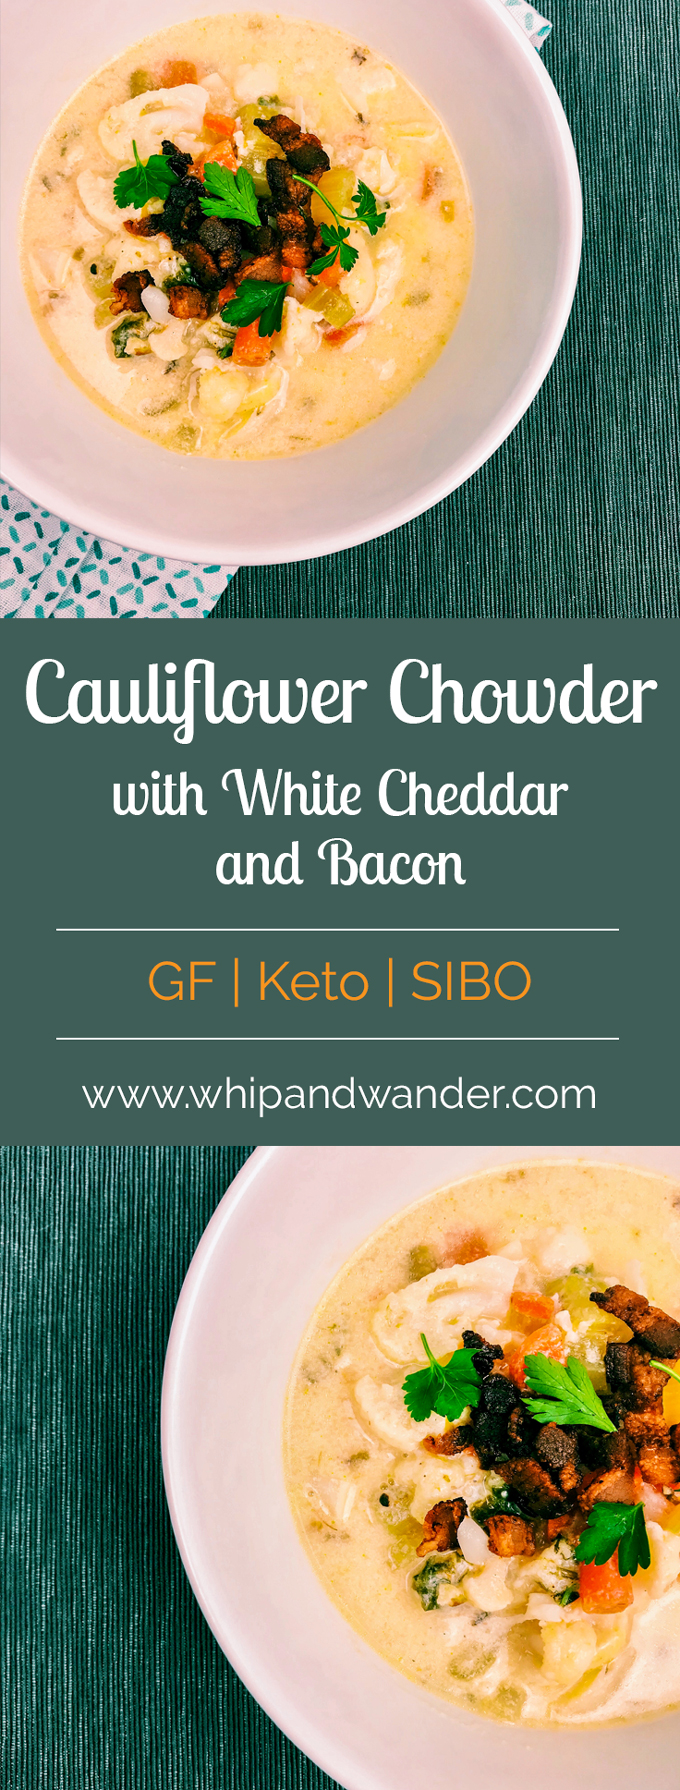 Cauliflower Chowder with White Cheddar and Bacon